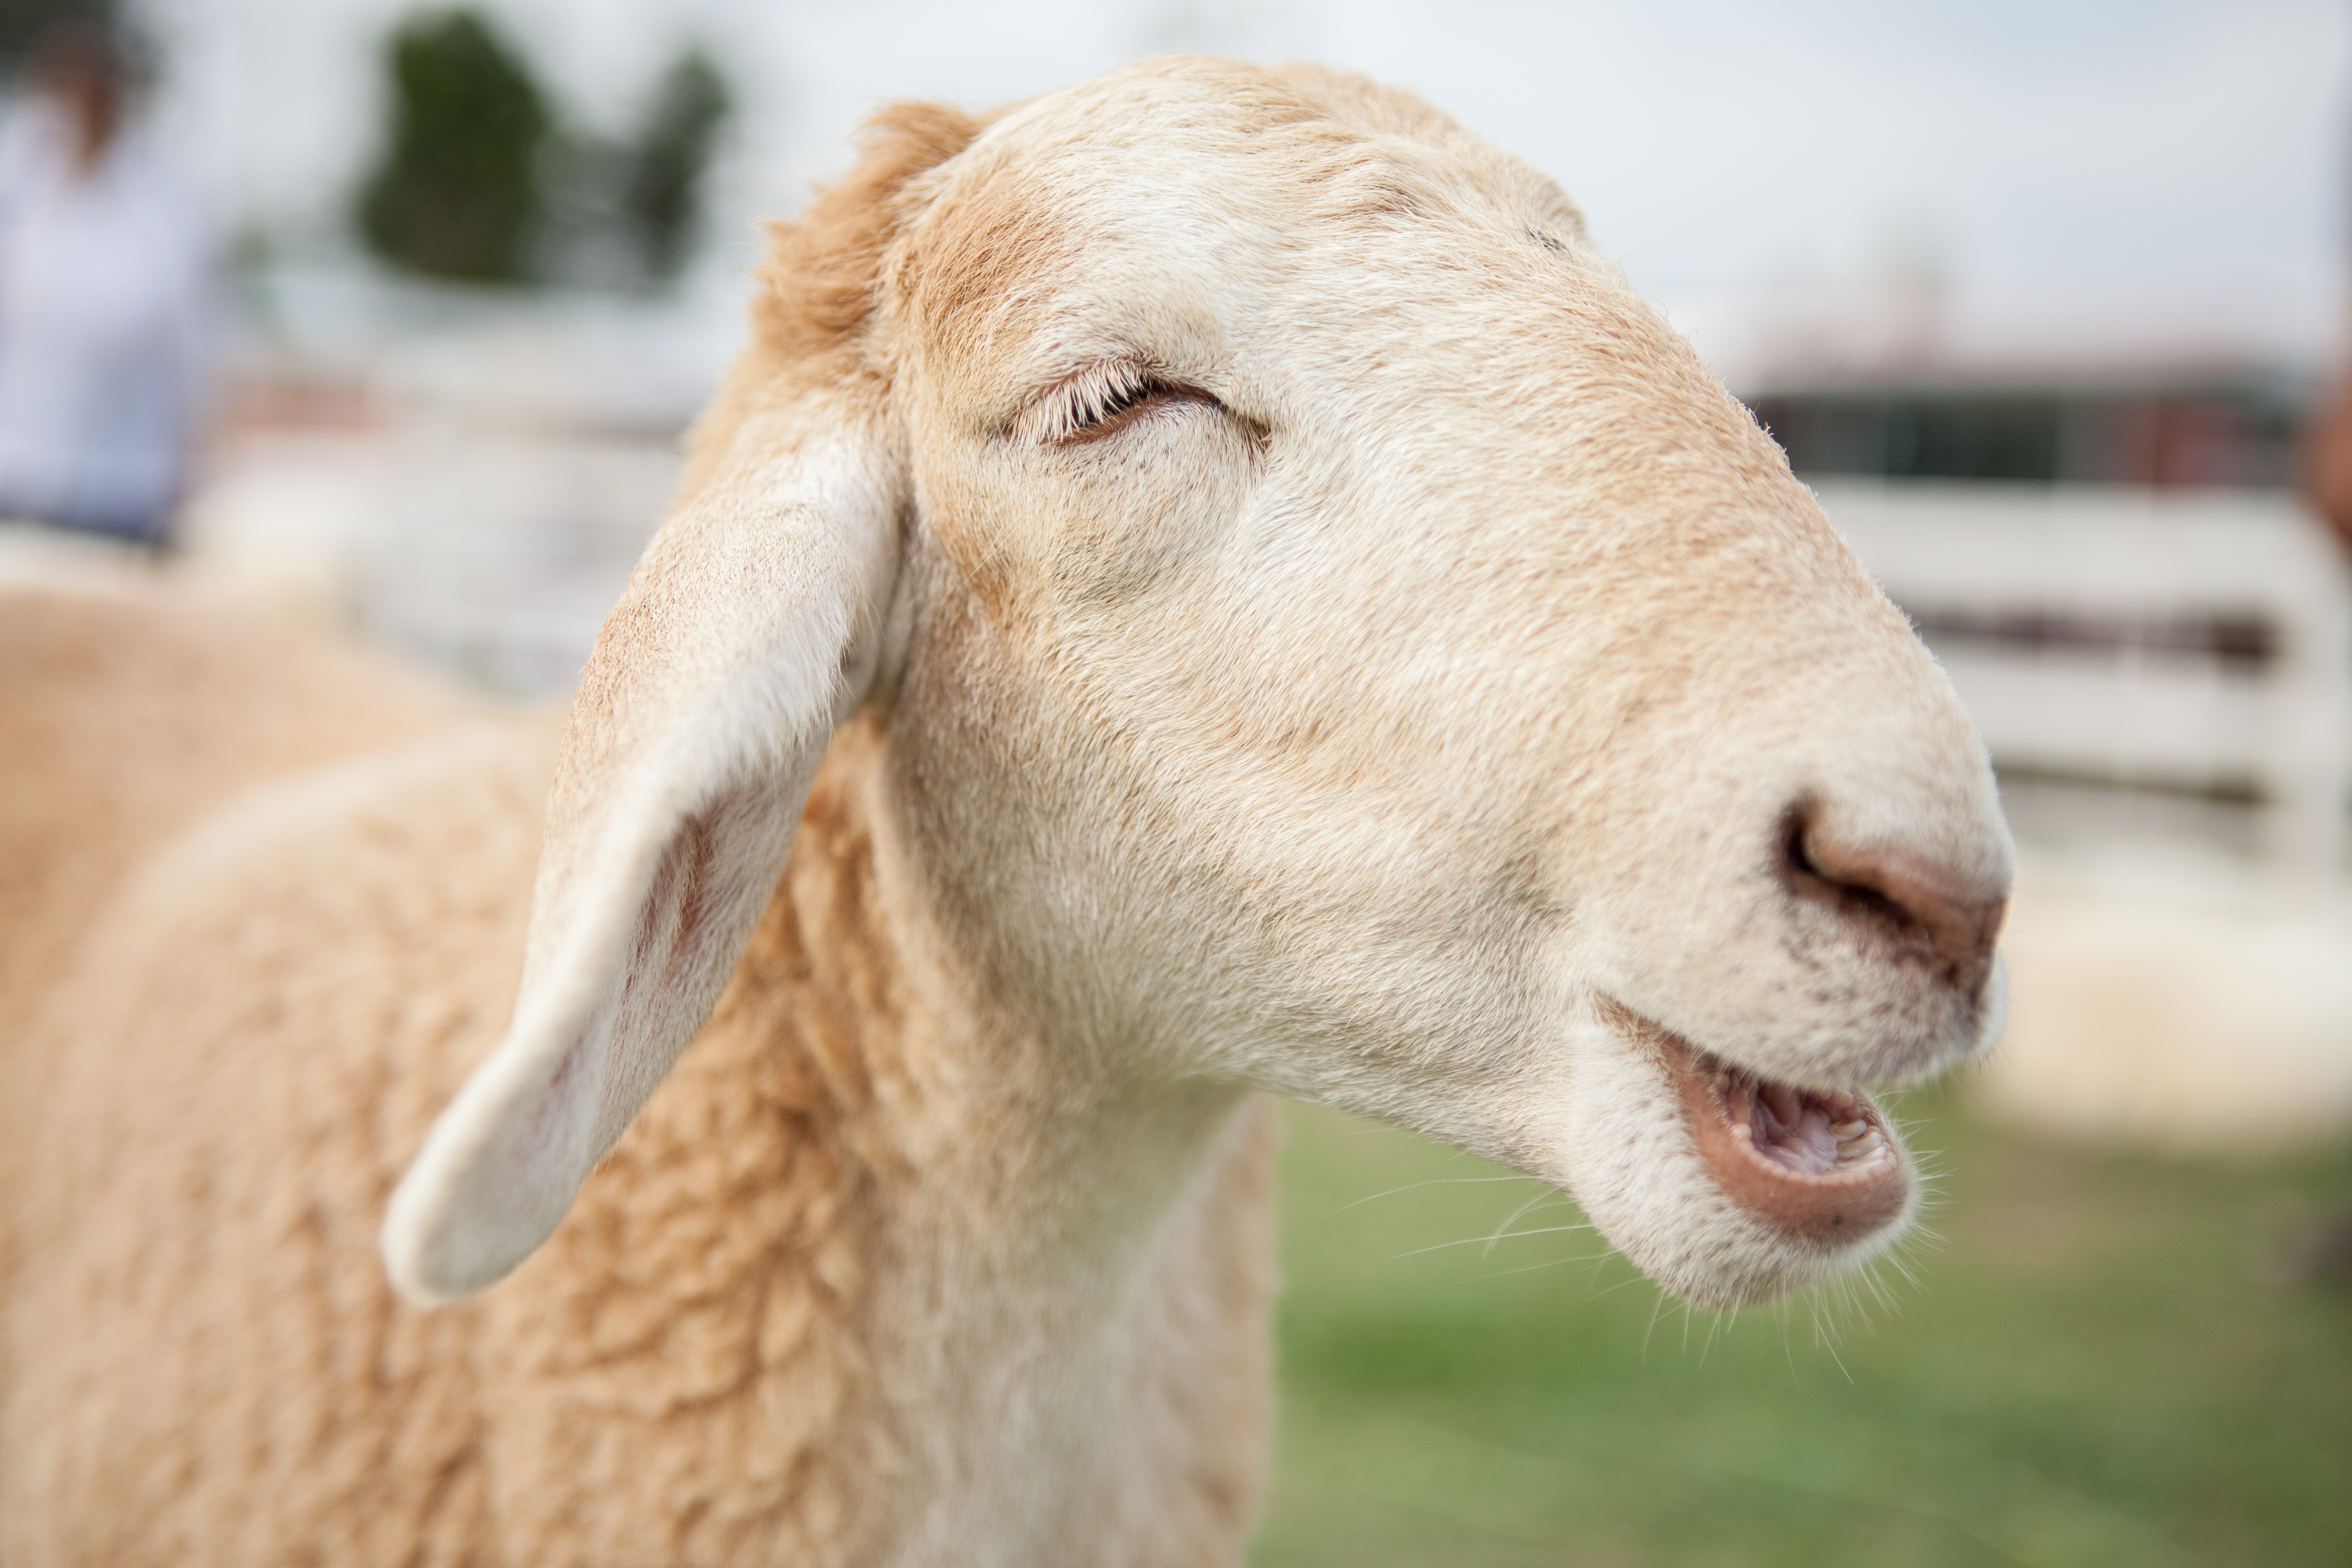 Sheep can learn to recognize faces, research shows